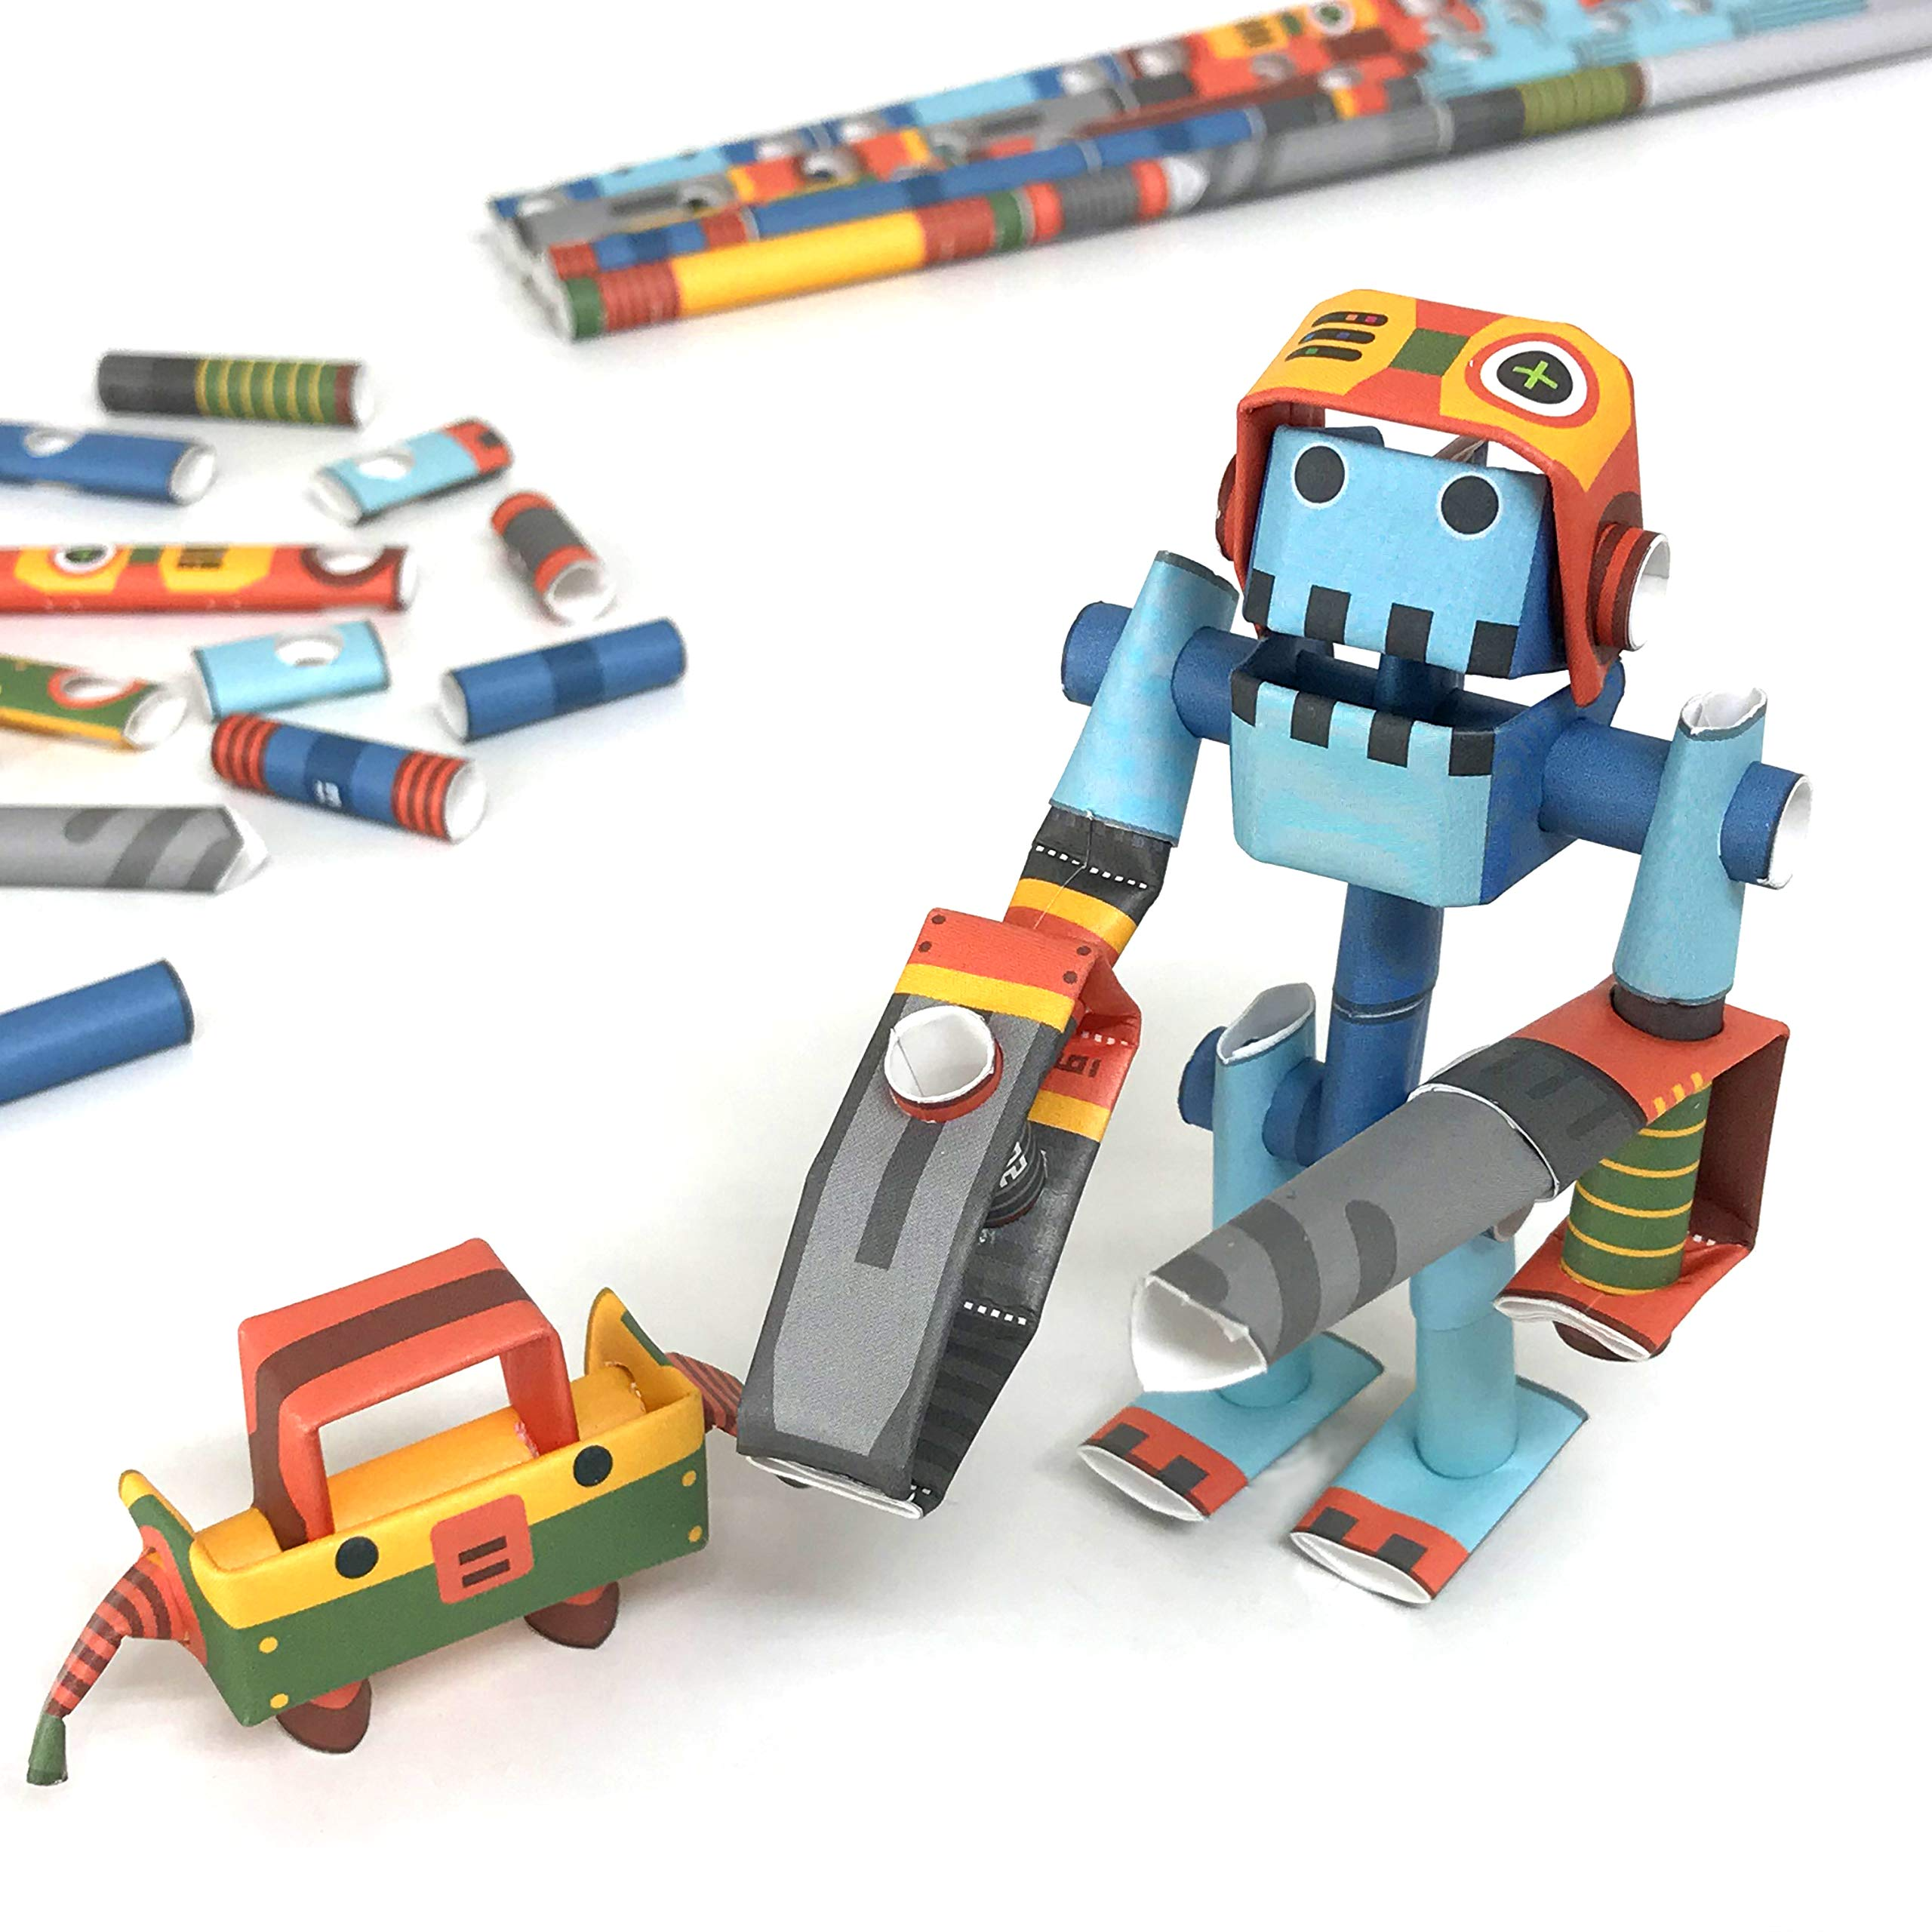 PIPEROID DIY Paper Craft Kit Dr. Joe & Boxy Robot Doctor & Assistant - Japanese Arts and Craft Kit for Kids and Adults - Birthday Gift and Party Favor for 3D Puzzle and Origami Paper Craft Enthusiasts